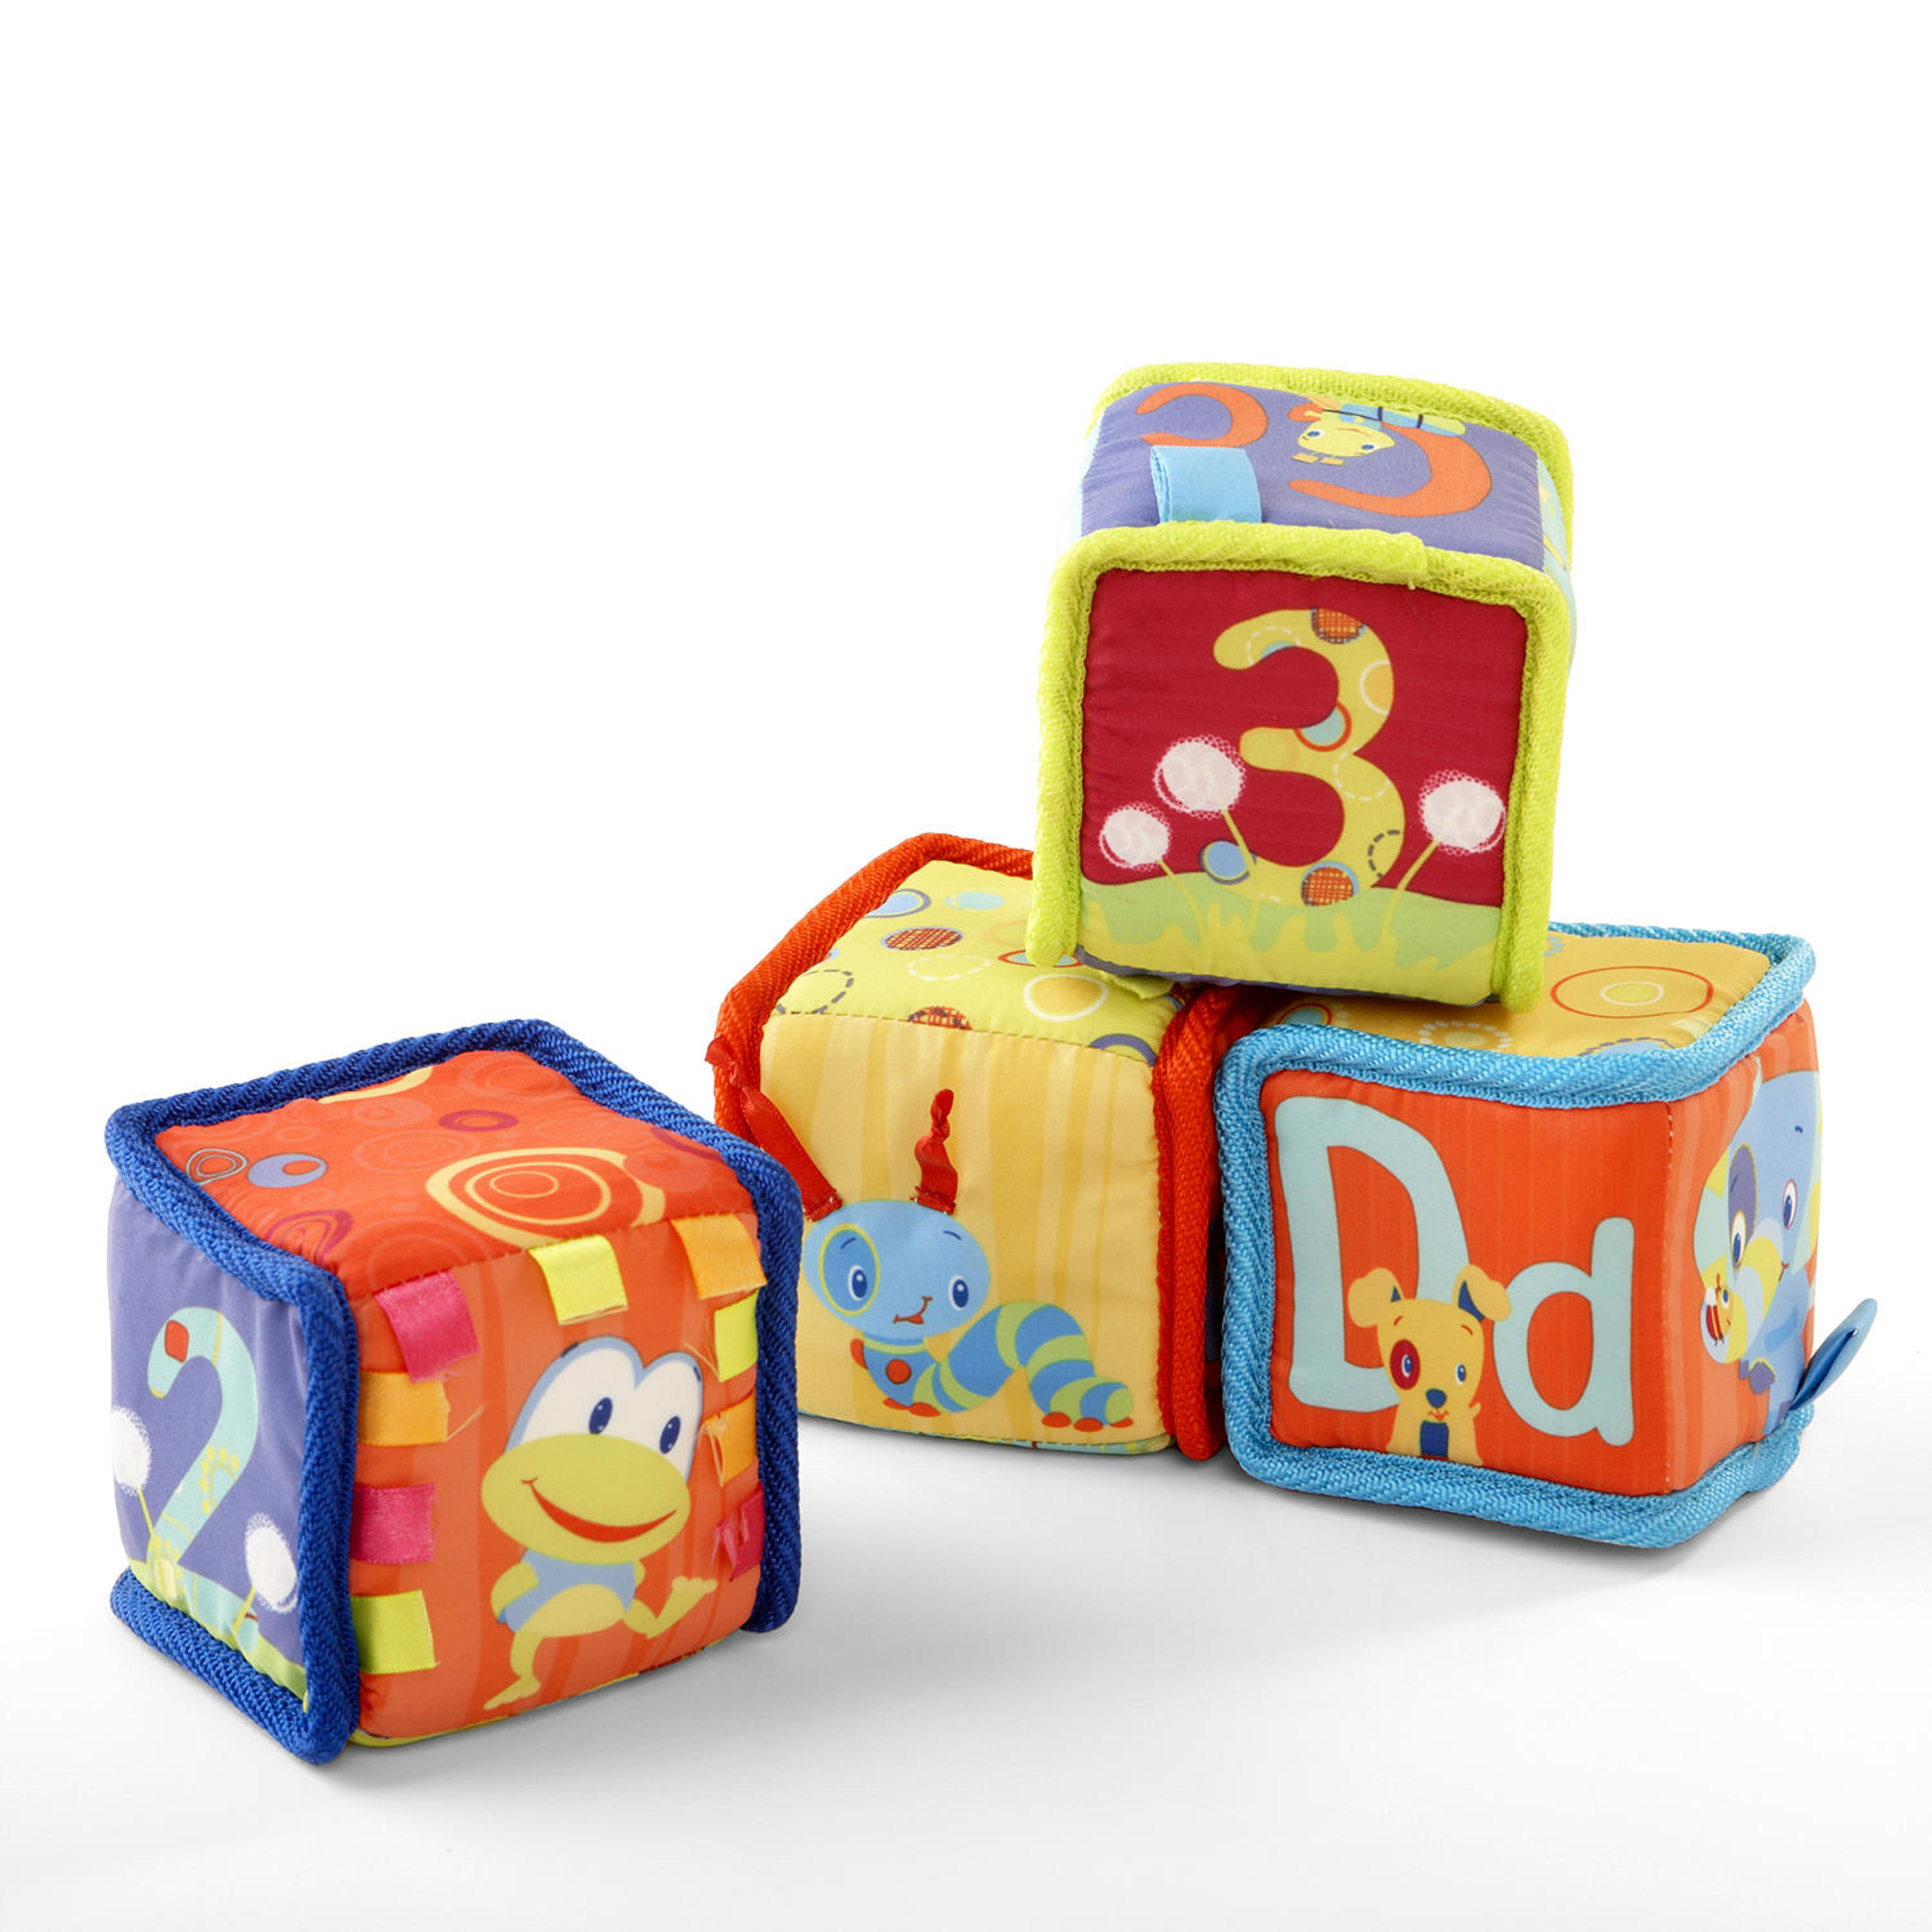 Bright Starts Grab & Stack Blocks Toy by Bright Starts